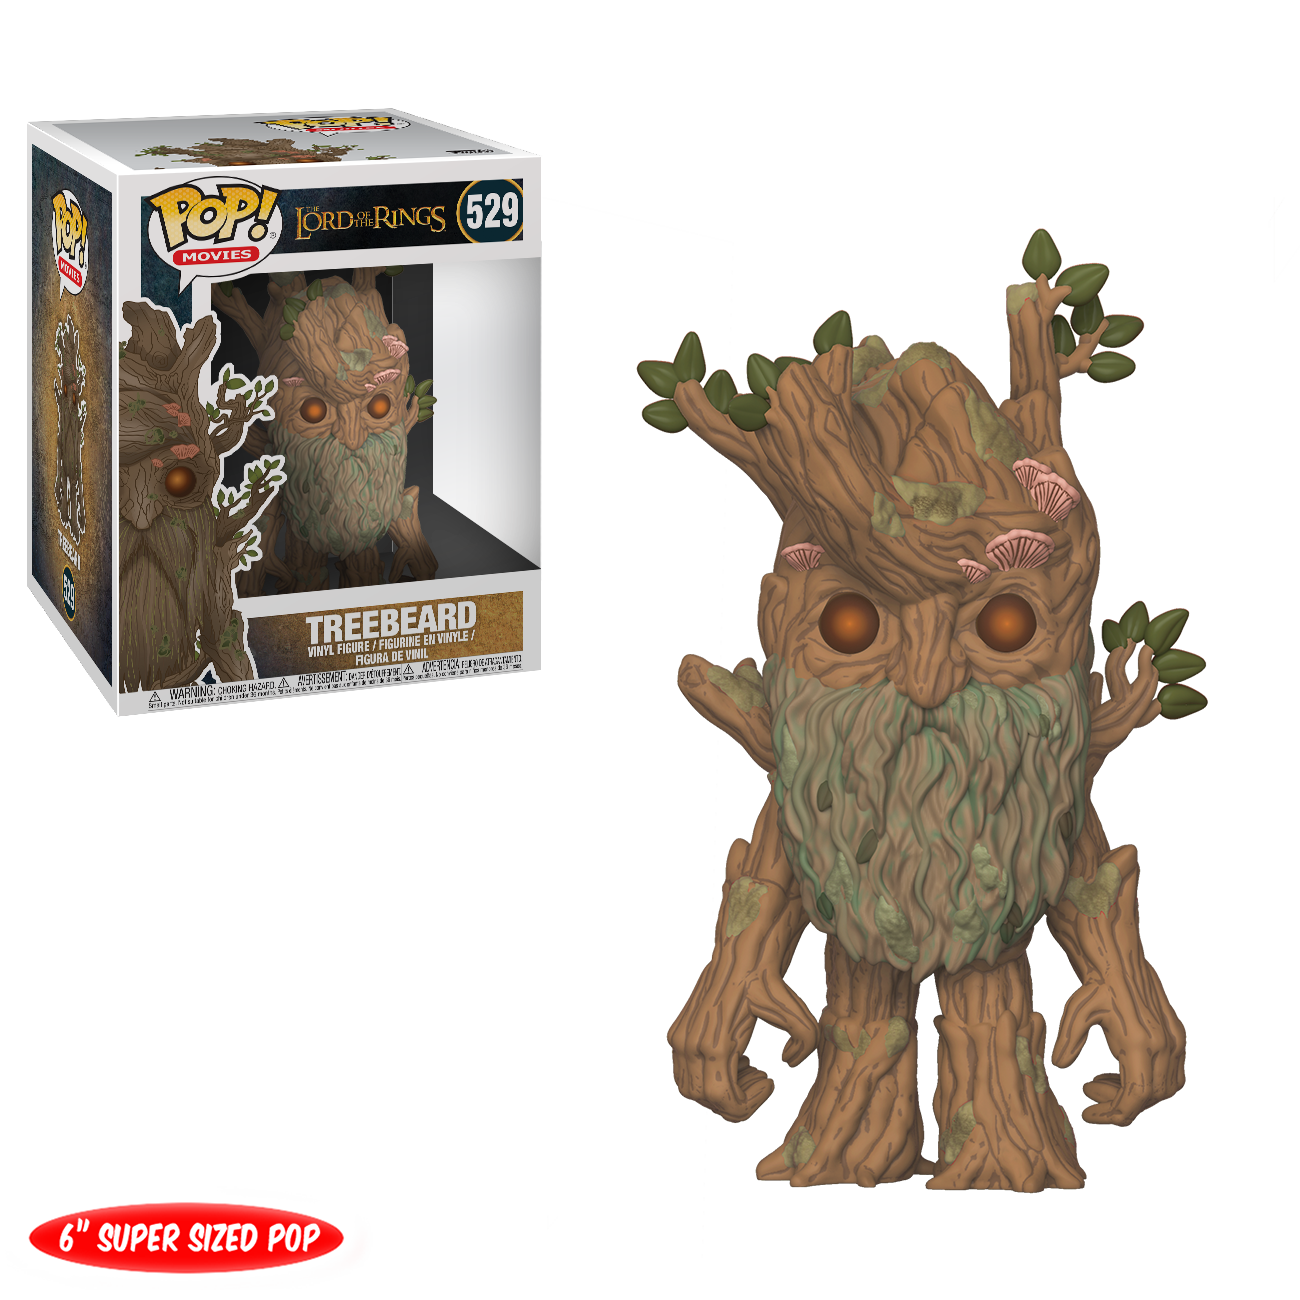 Movies-Lord of the Rings-Gandalf #13550 Funko Pop